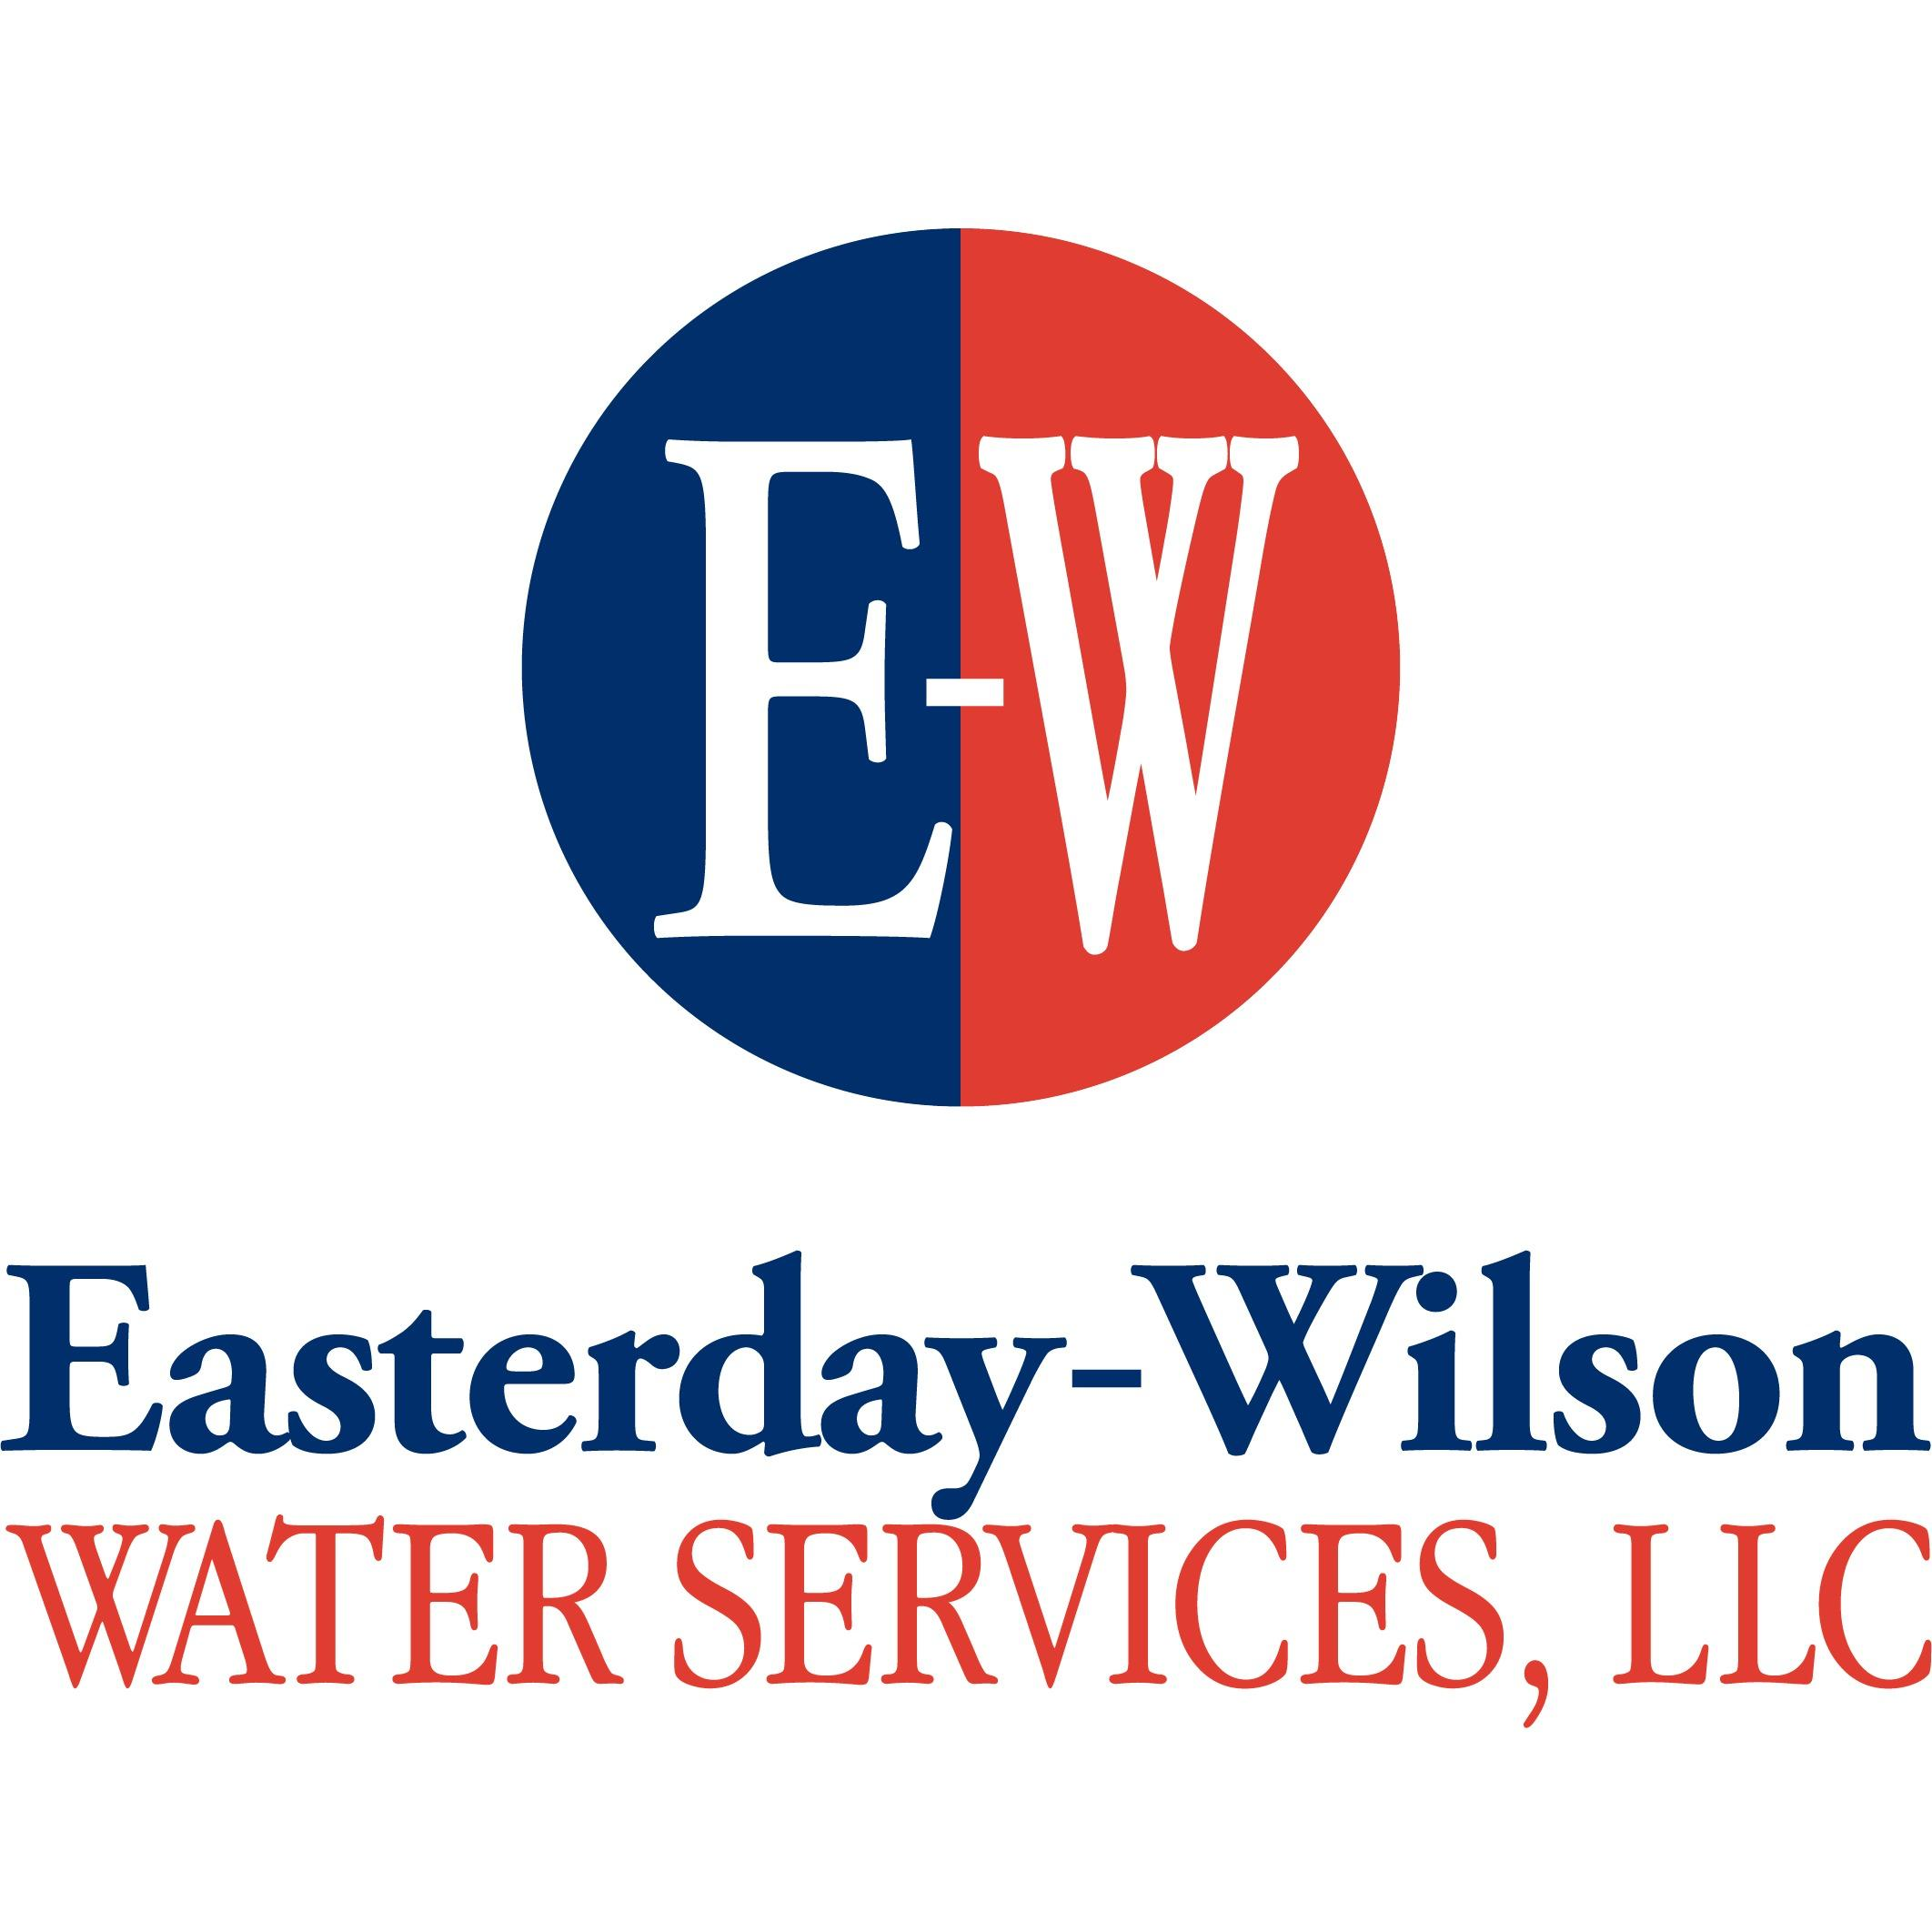 Easterday-Wilson Water Services, LLC image 3